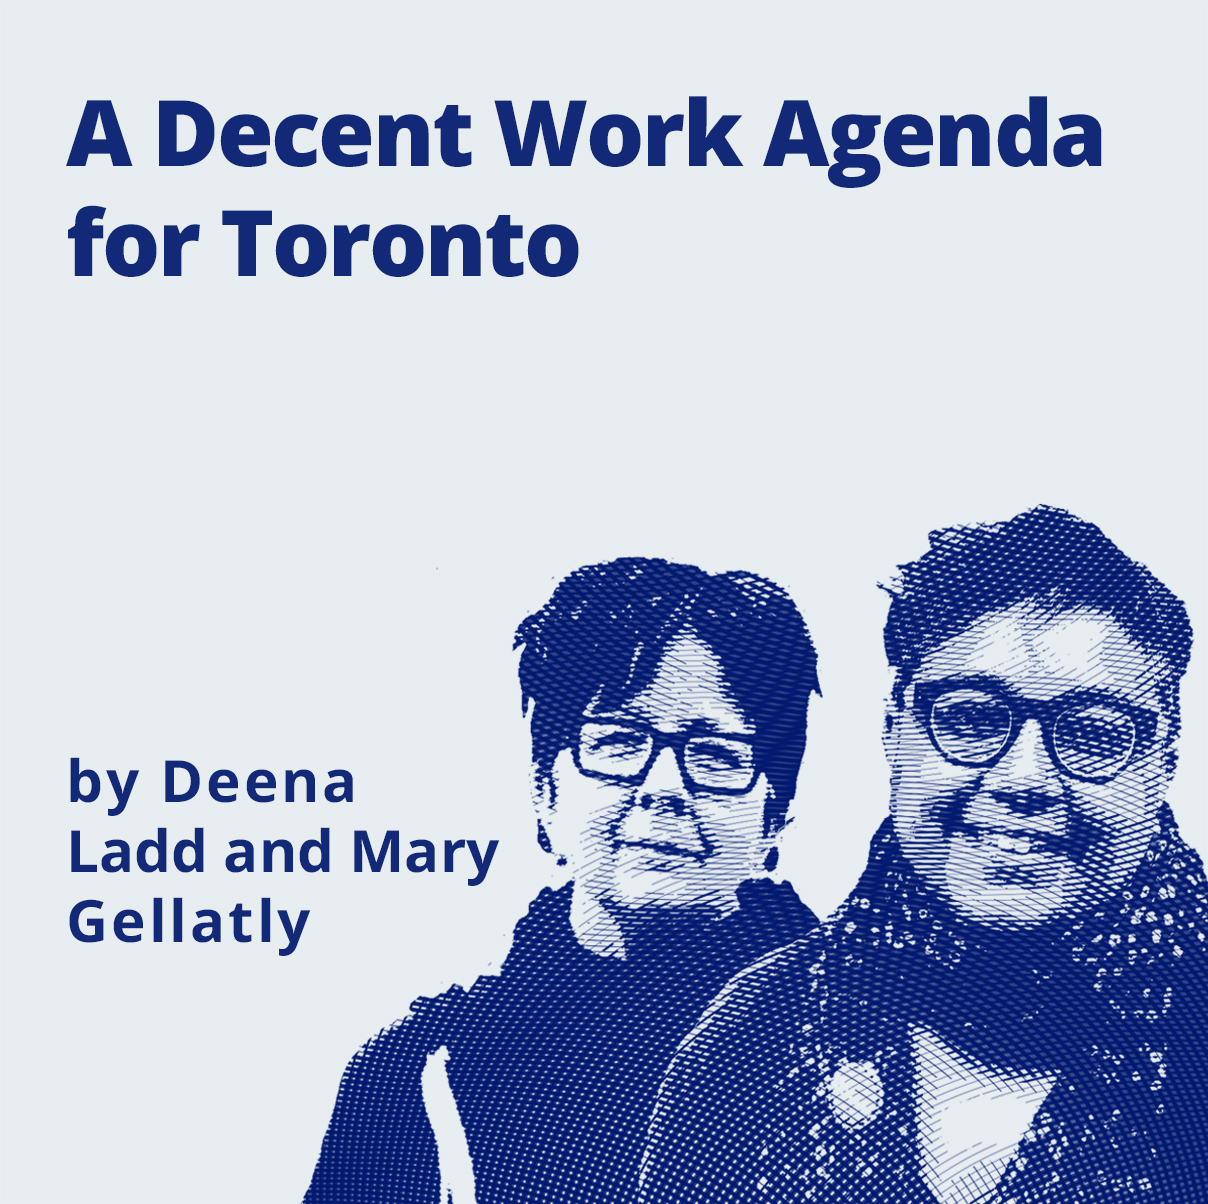 RA Decent Work Agenda for Toronto page by Deena Ladd and Mary Gellatly